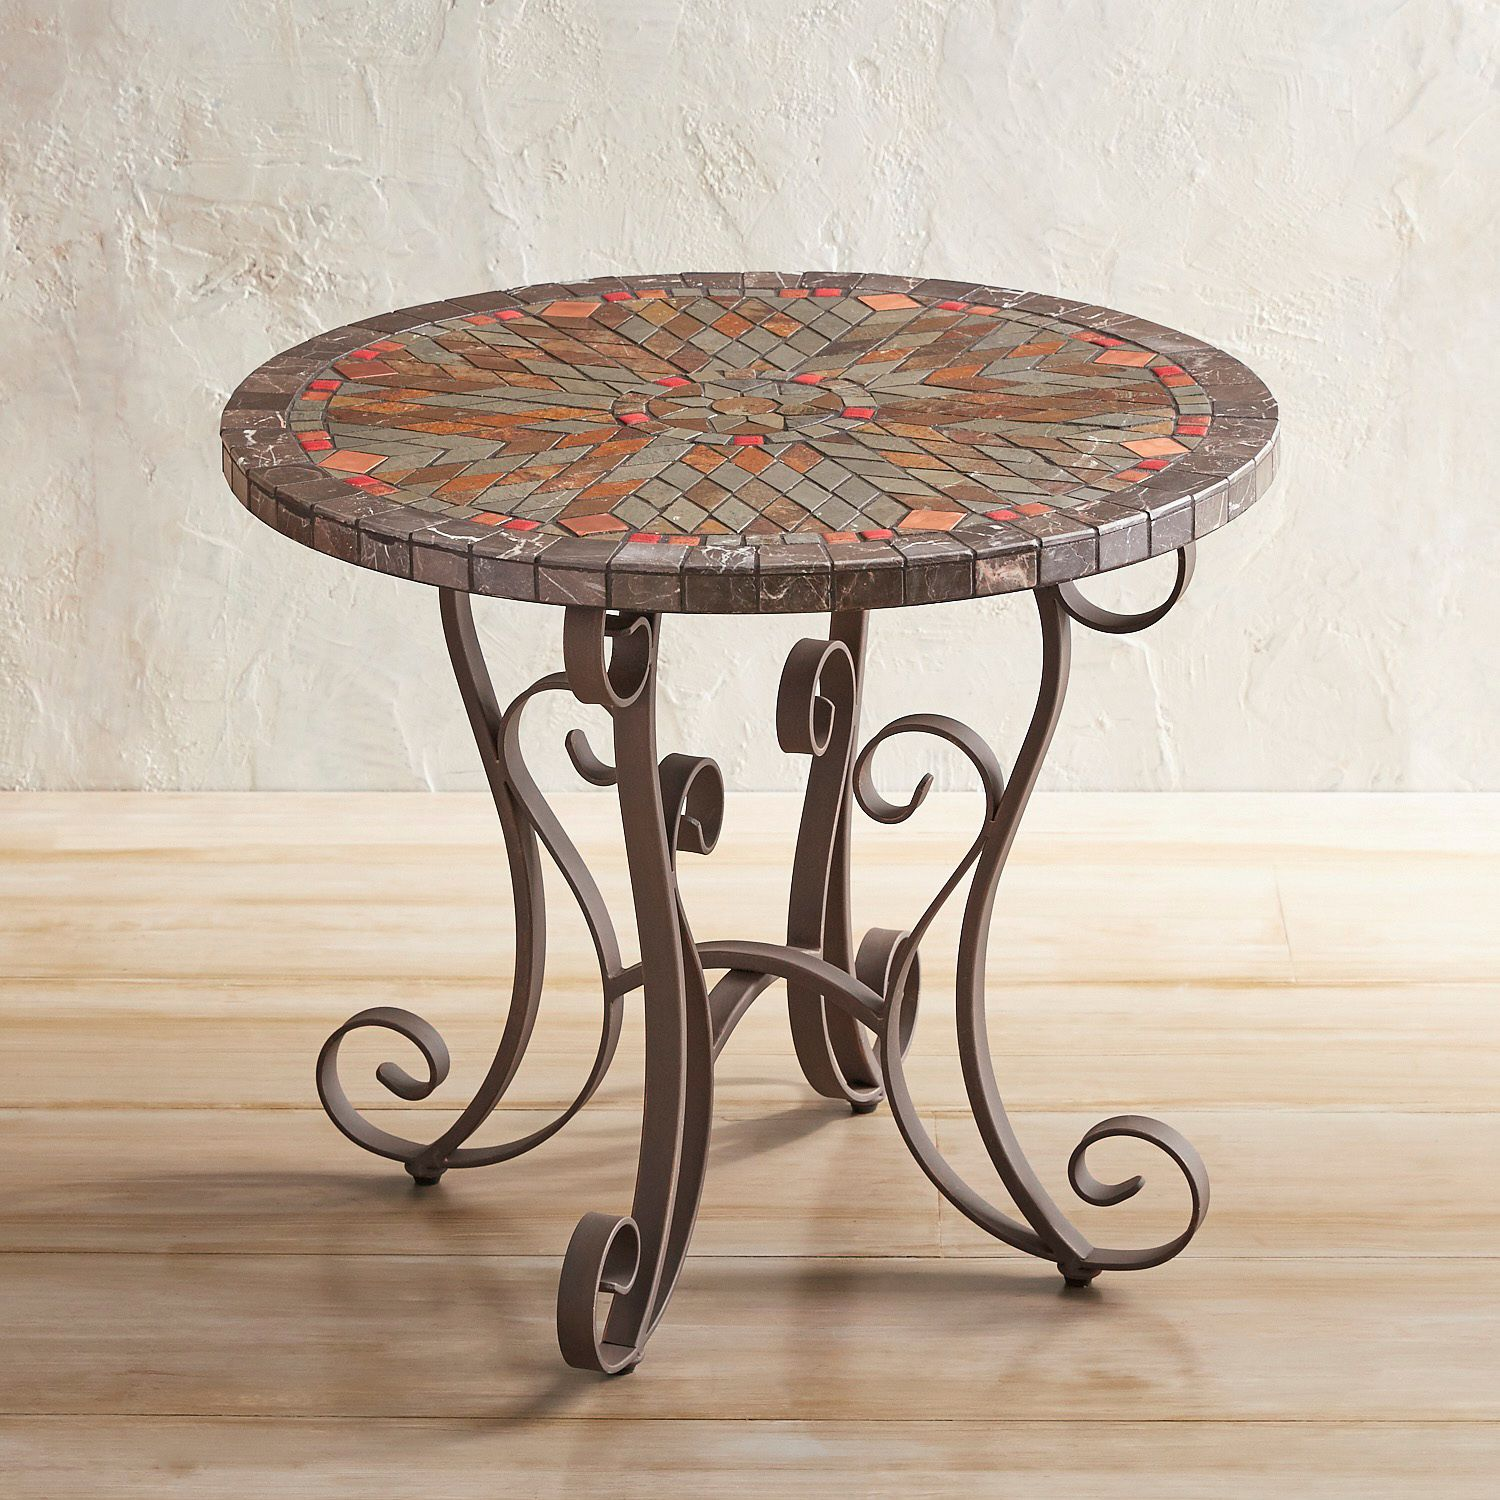 verazze slate round chat table pier imports mosaic accent indoor black metal and wood coffee leaf west elm small corner for hallway asian lamp shade concrete outdoor chairs white